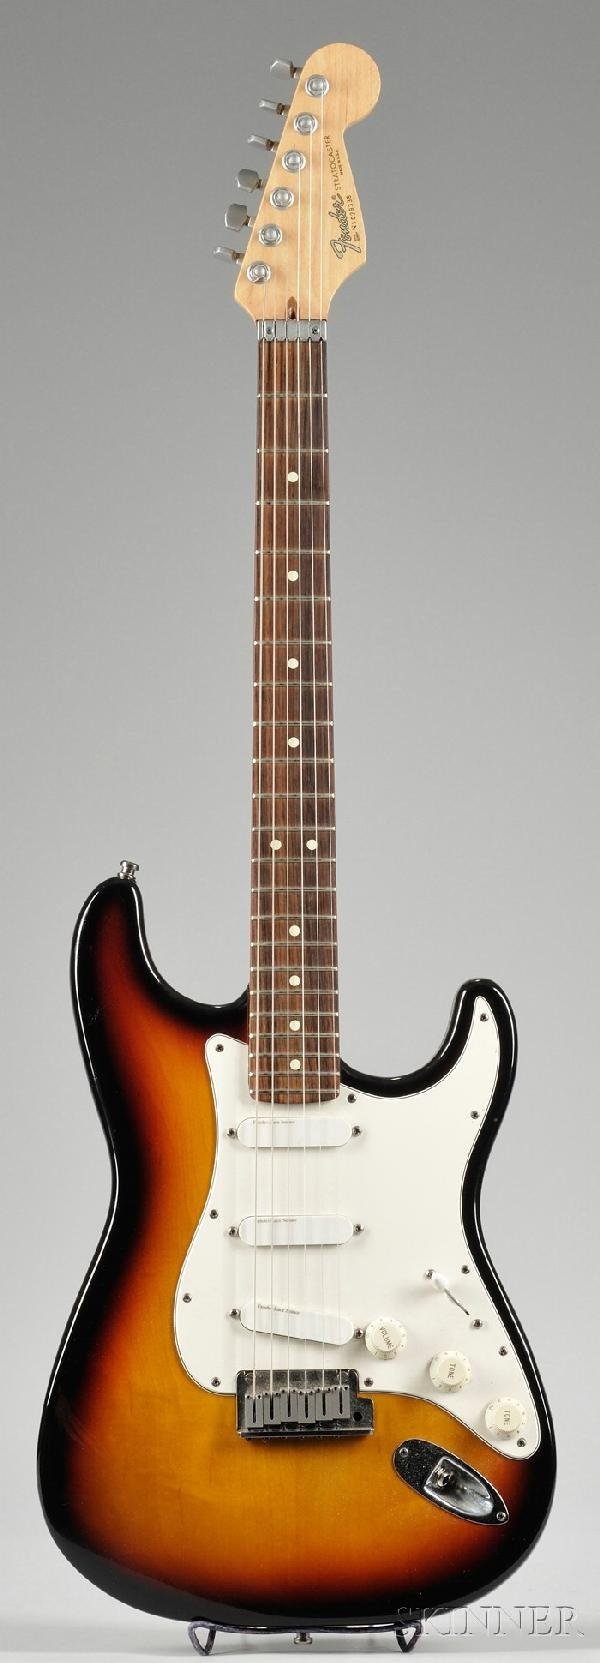 20: American Electric Guitar, Fender Musical Instrument